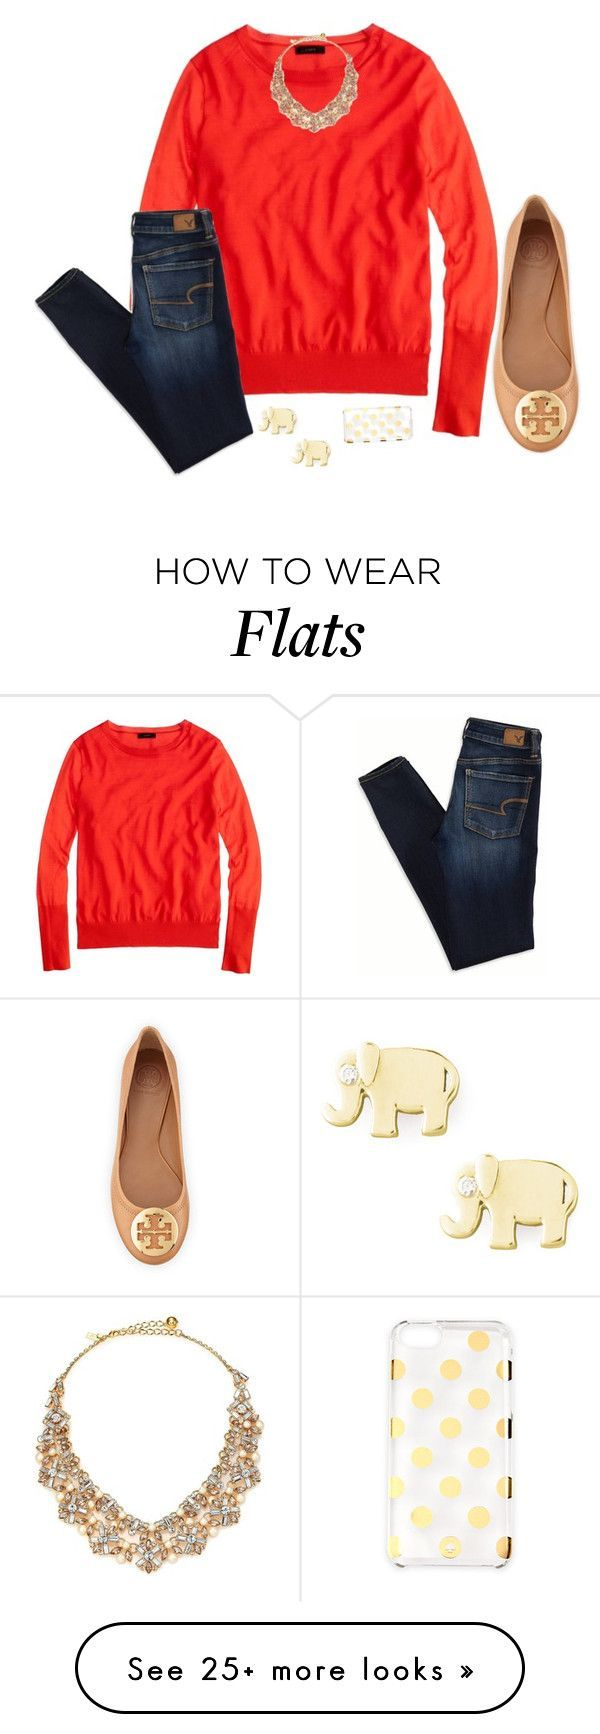 how-to-wear-ballet-flats-10-best-outfits-5 how to wear ballet flats 10 best outf…